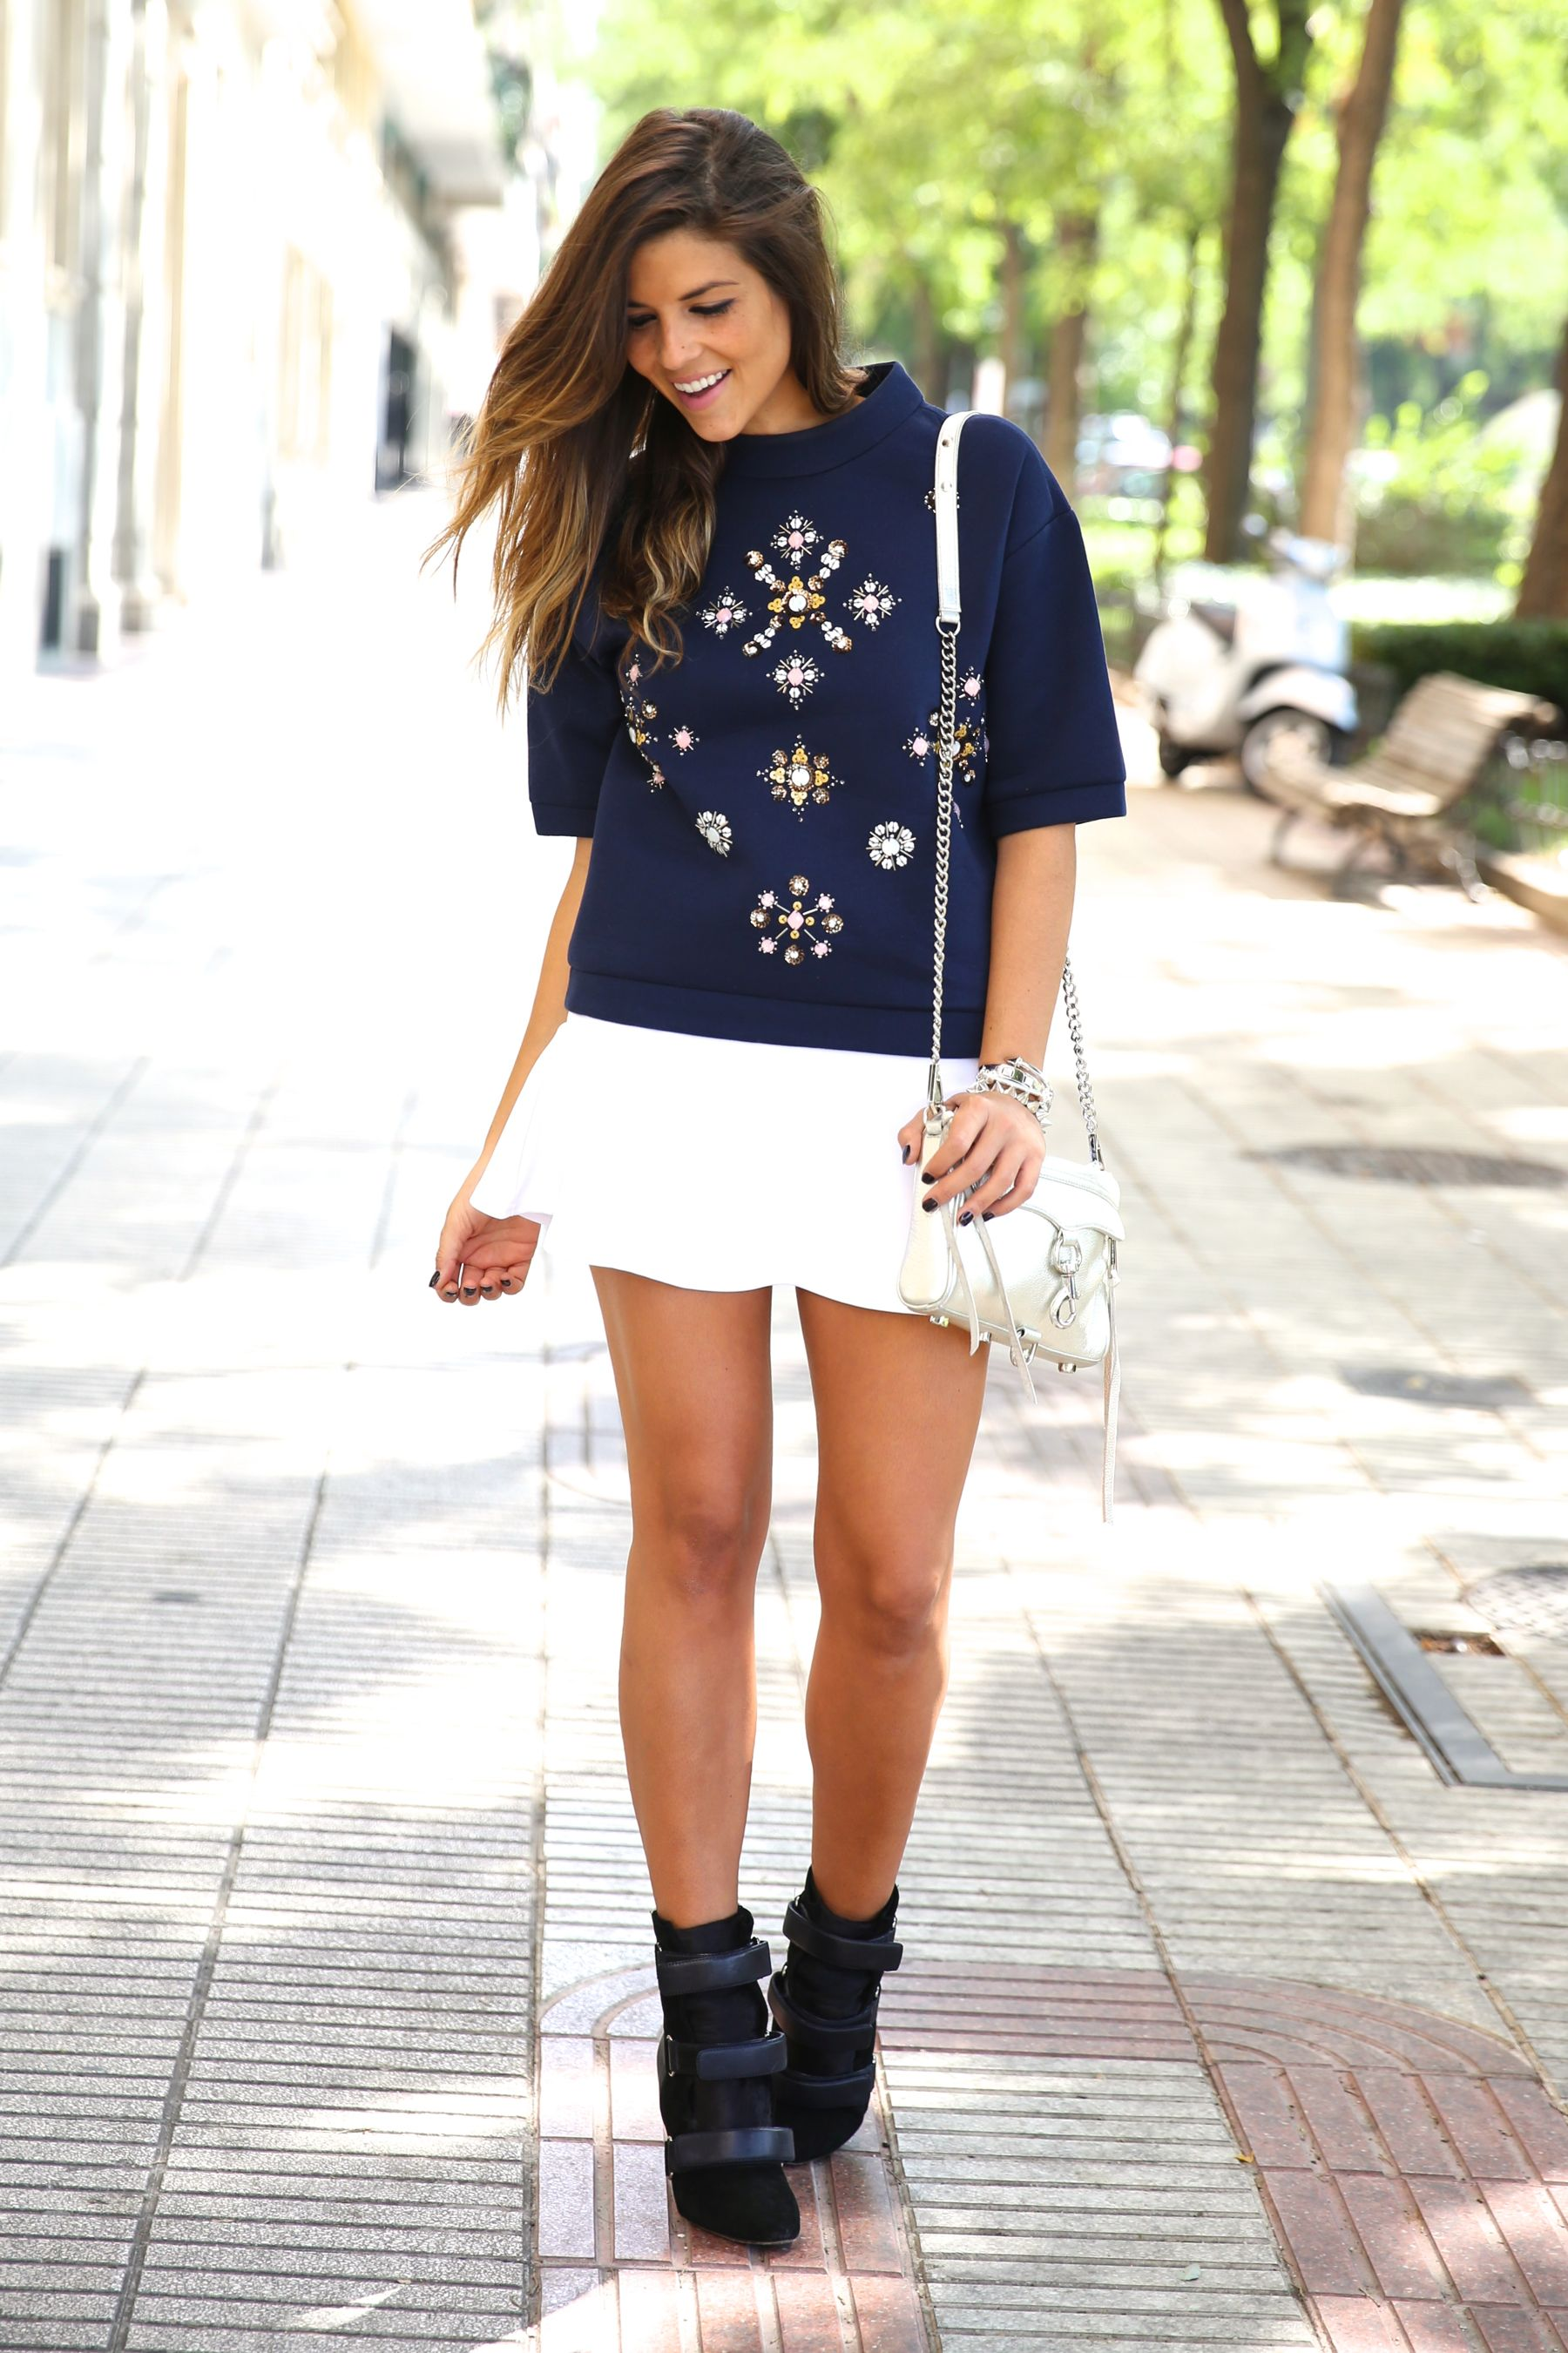 trendy_taste-look-outfit-street_style-ootd-blog-blogger-fashion_spain-moda_españa-sport_chic-isabel_marant-botines-booties-sudadera-pedrería-sweater-falda-skirt-blue-azul-trend-tendencia-bolso_plateado-silver-bag-13